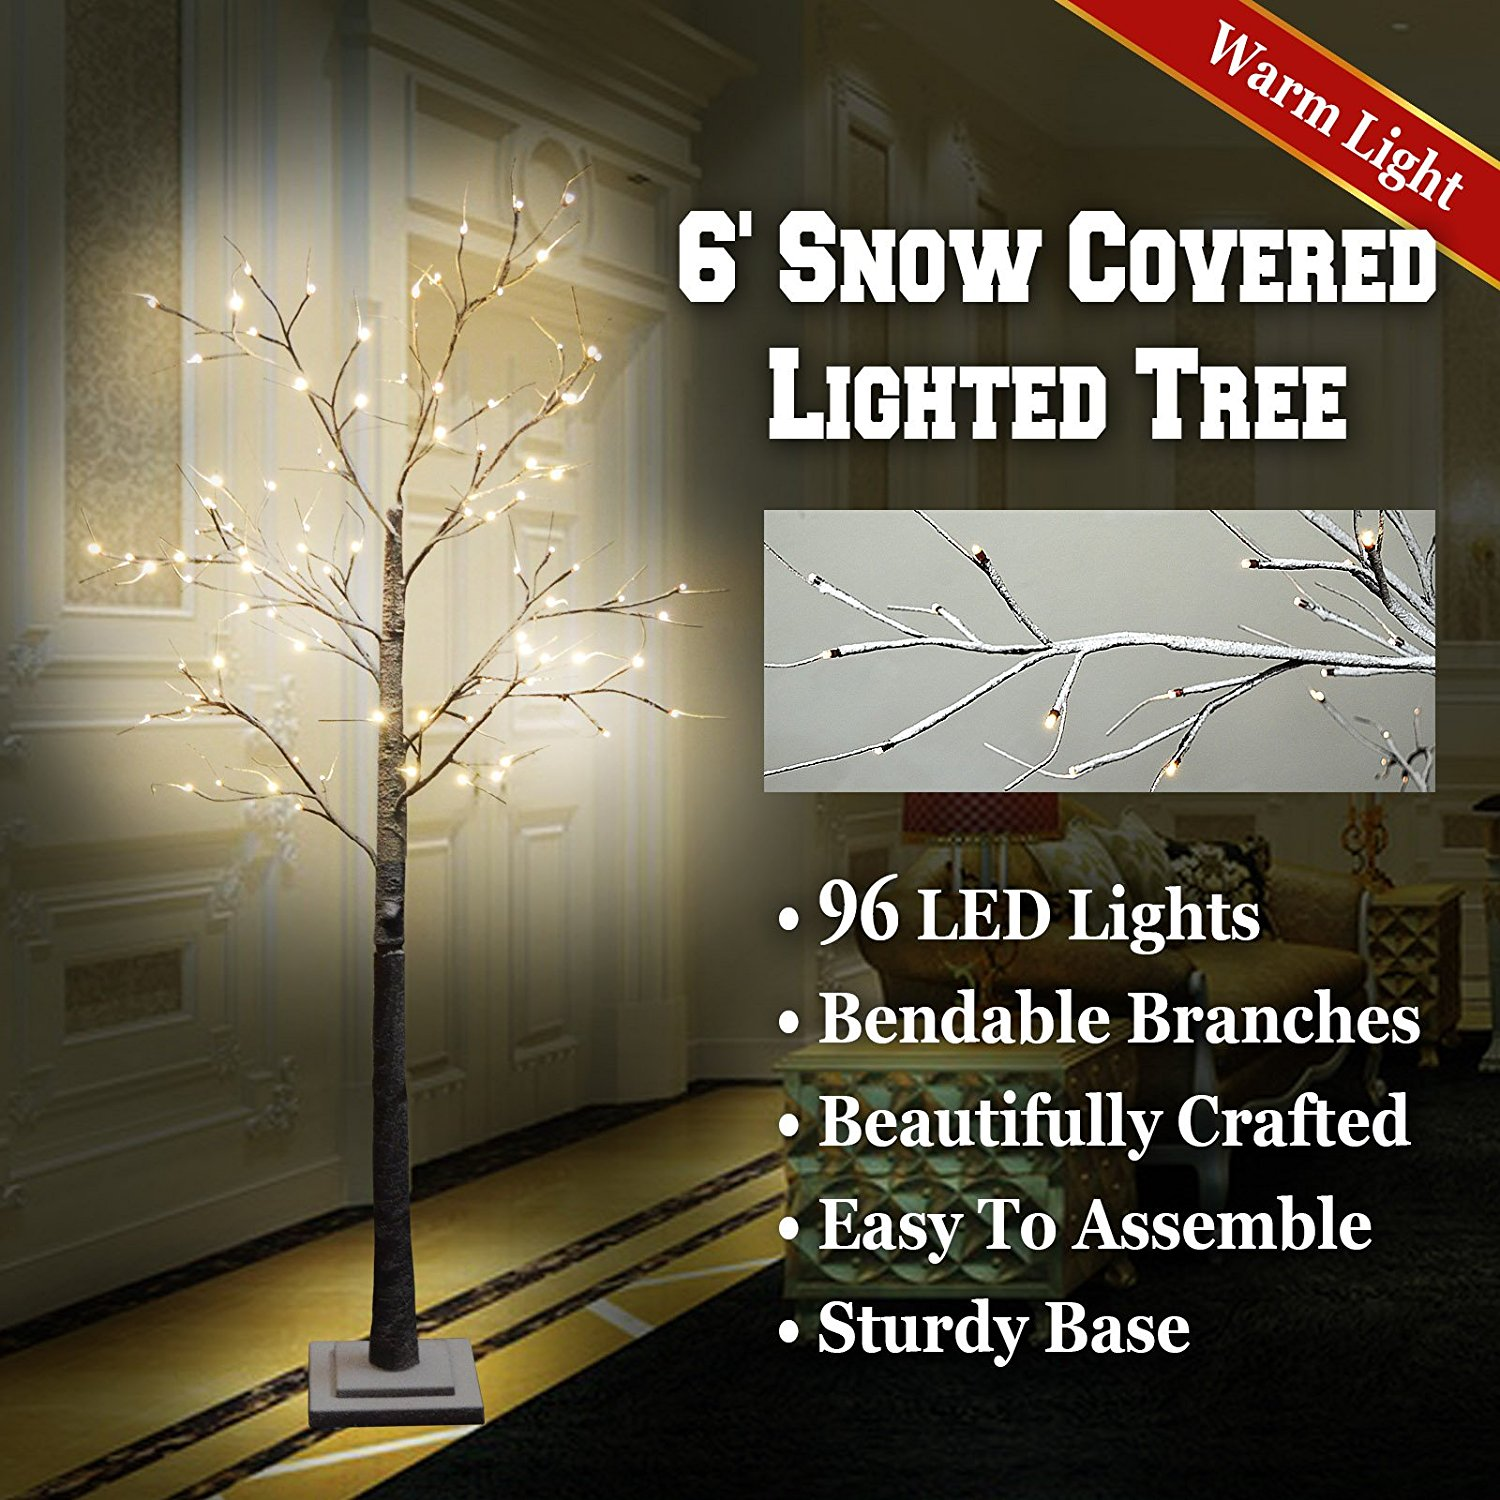 BenefitUSA 6FT 96L LED Snow Tree Snow Flake Decoration Light Indoor and Outdoor Use Warm White